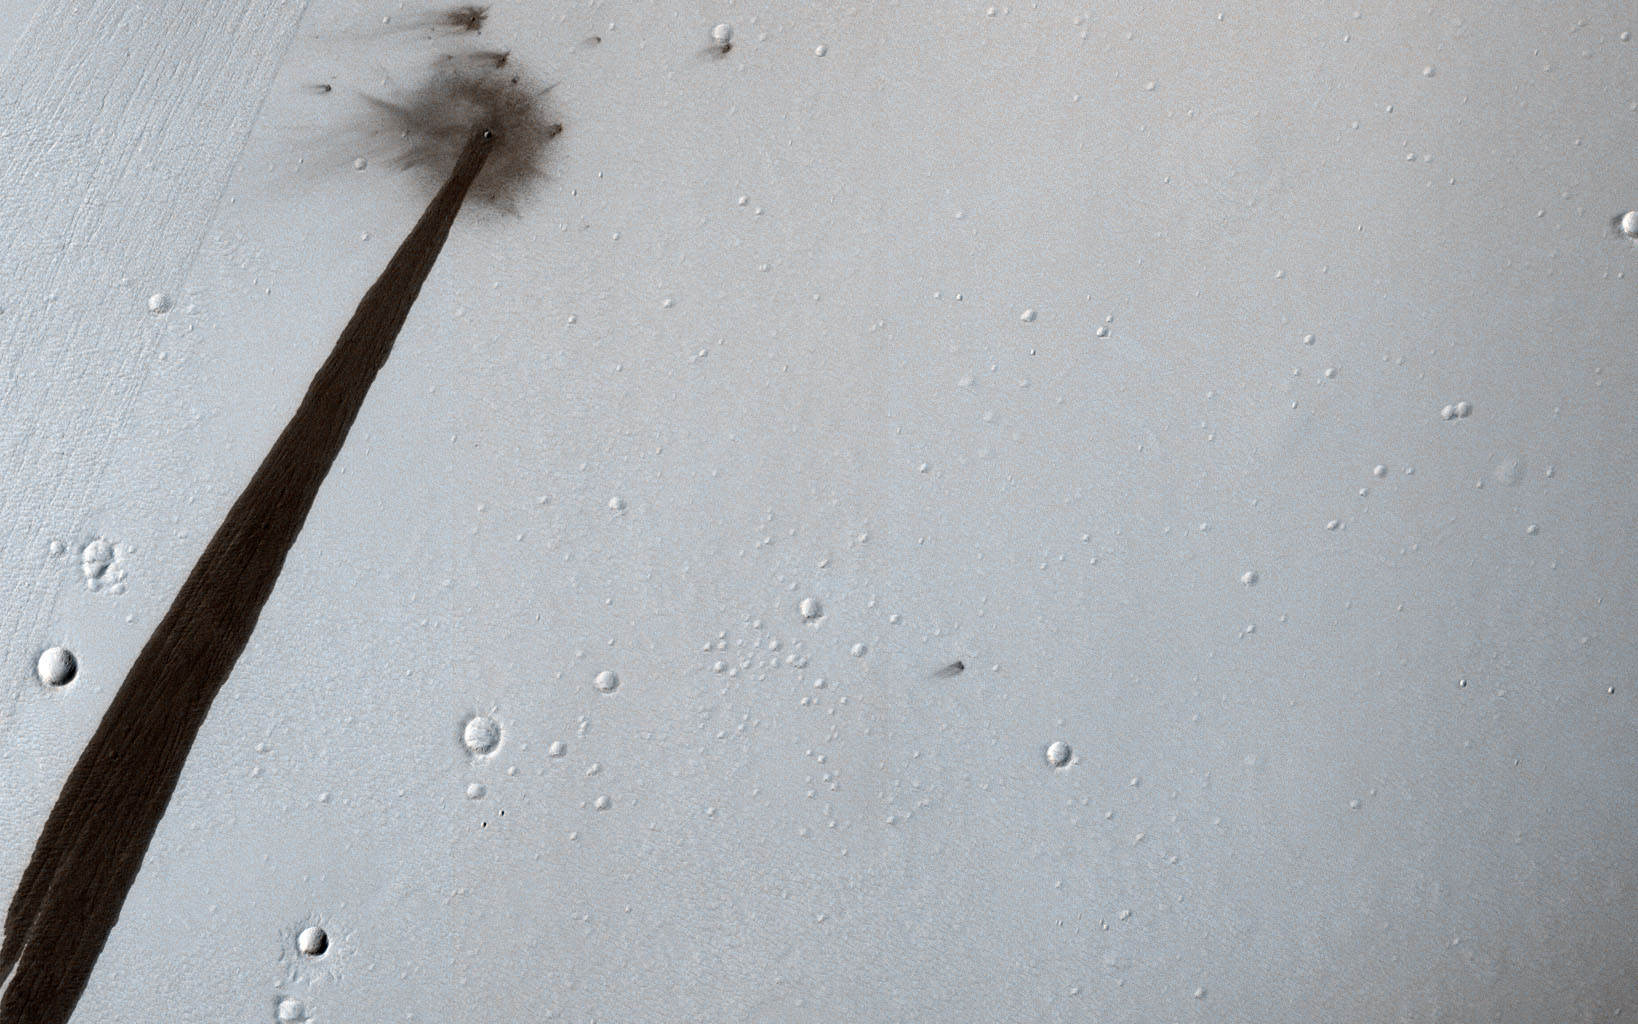 This image from NASA's Mars Reconnaissance Orbiter shows an impact crater that triggered a slope streak. When a meteoroid hit the surface and exploded to make the crater, it destabilized the slope and initiated this avalanche.